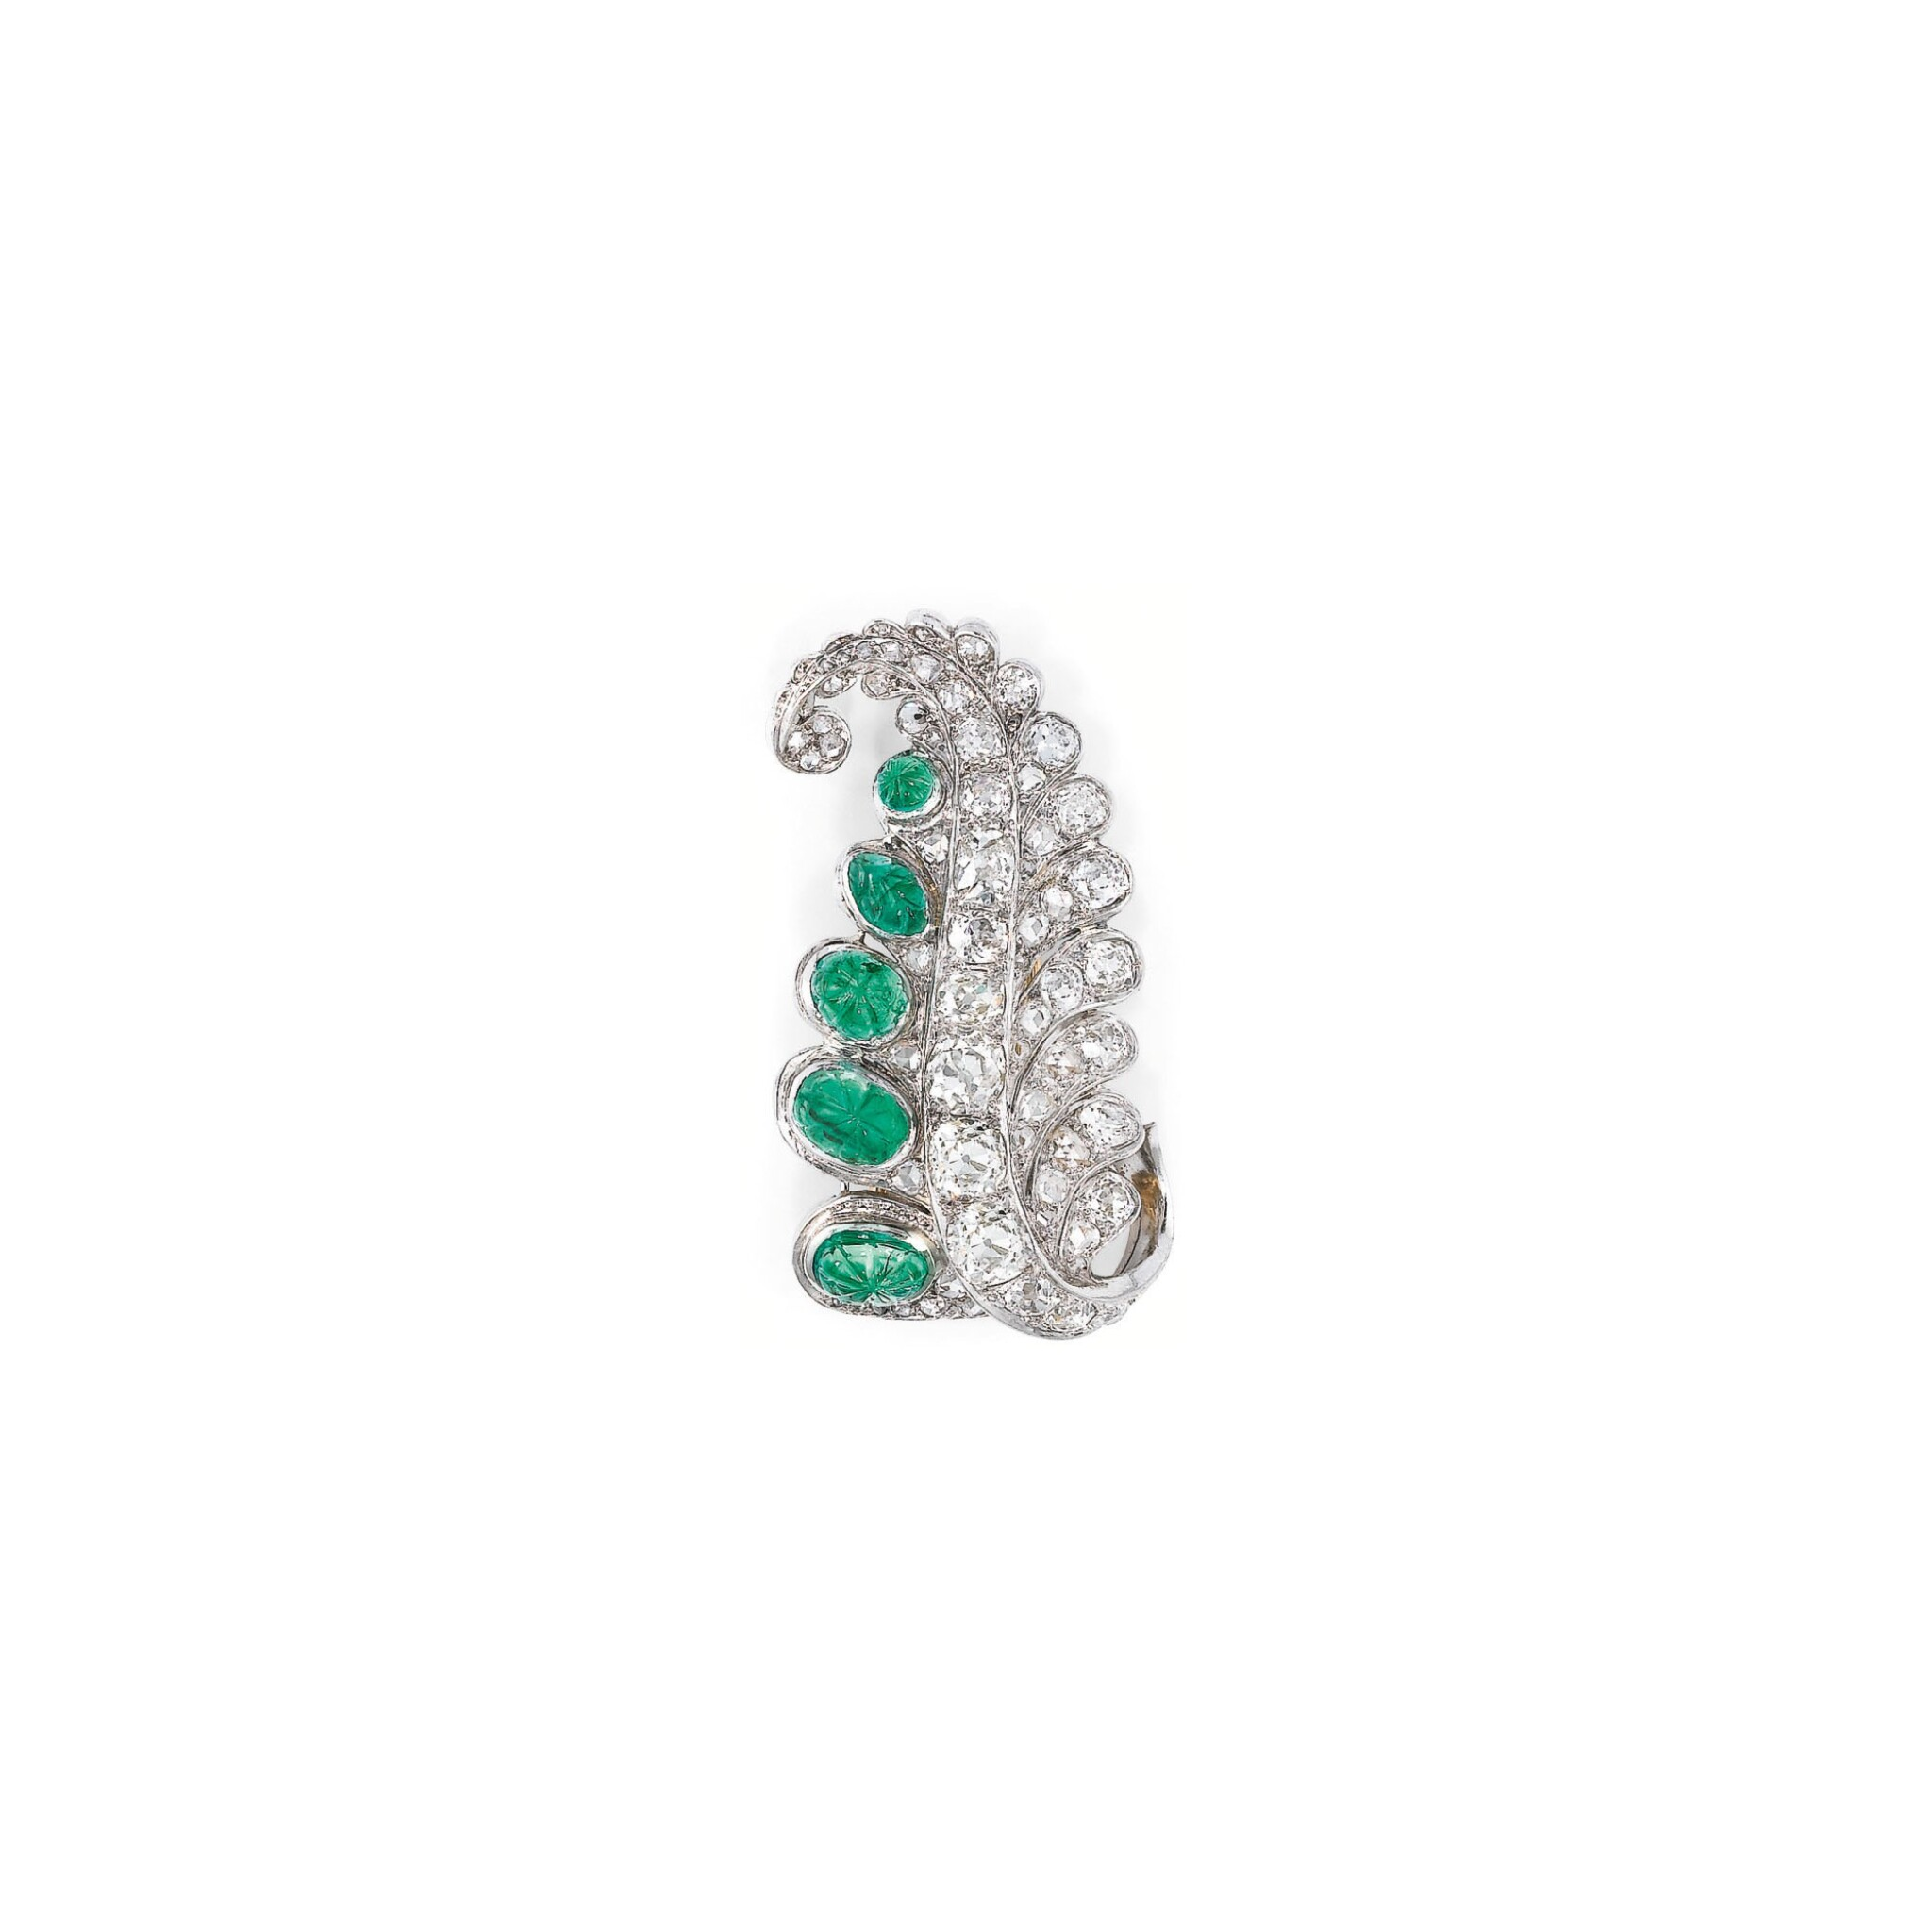 """View full screen - View 1 of Lot 252. CLIP EMERAUDES ET DIAMANTS, """"HINDOU"""", SUZANNE BELPERRON   EMERALD AND DIAMOND CLIP, 'HINDOU', SUZANNE BELPERRON."""